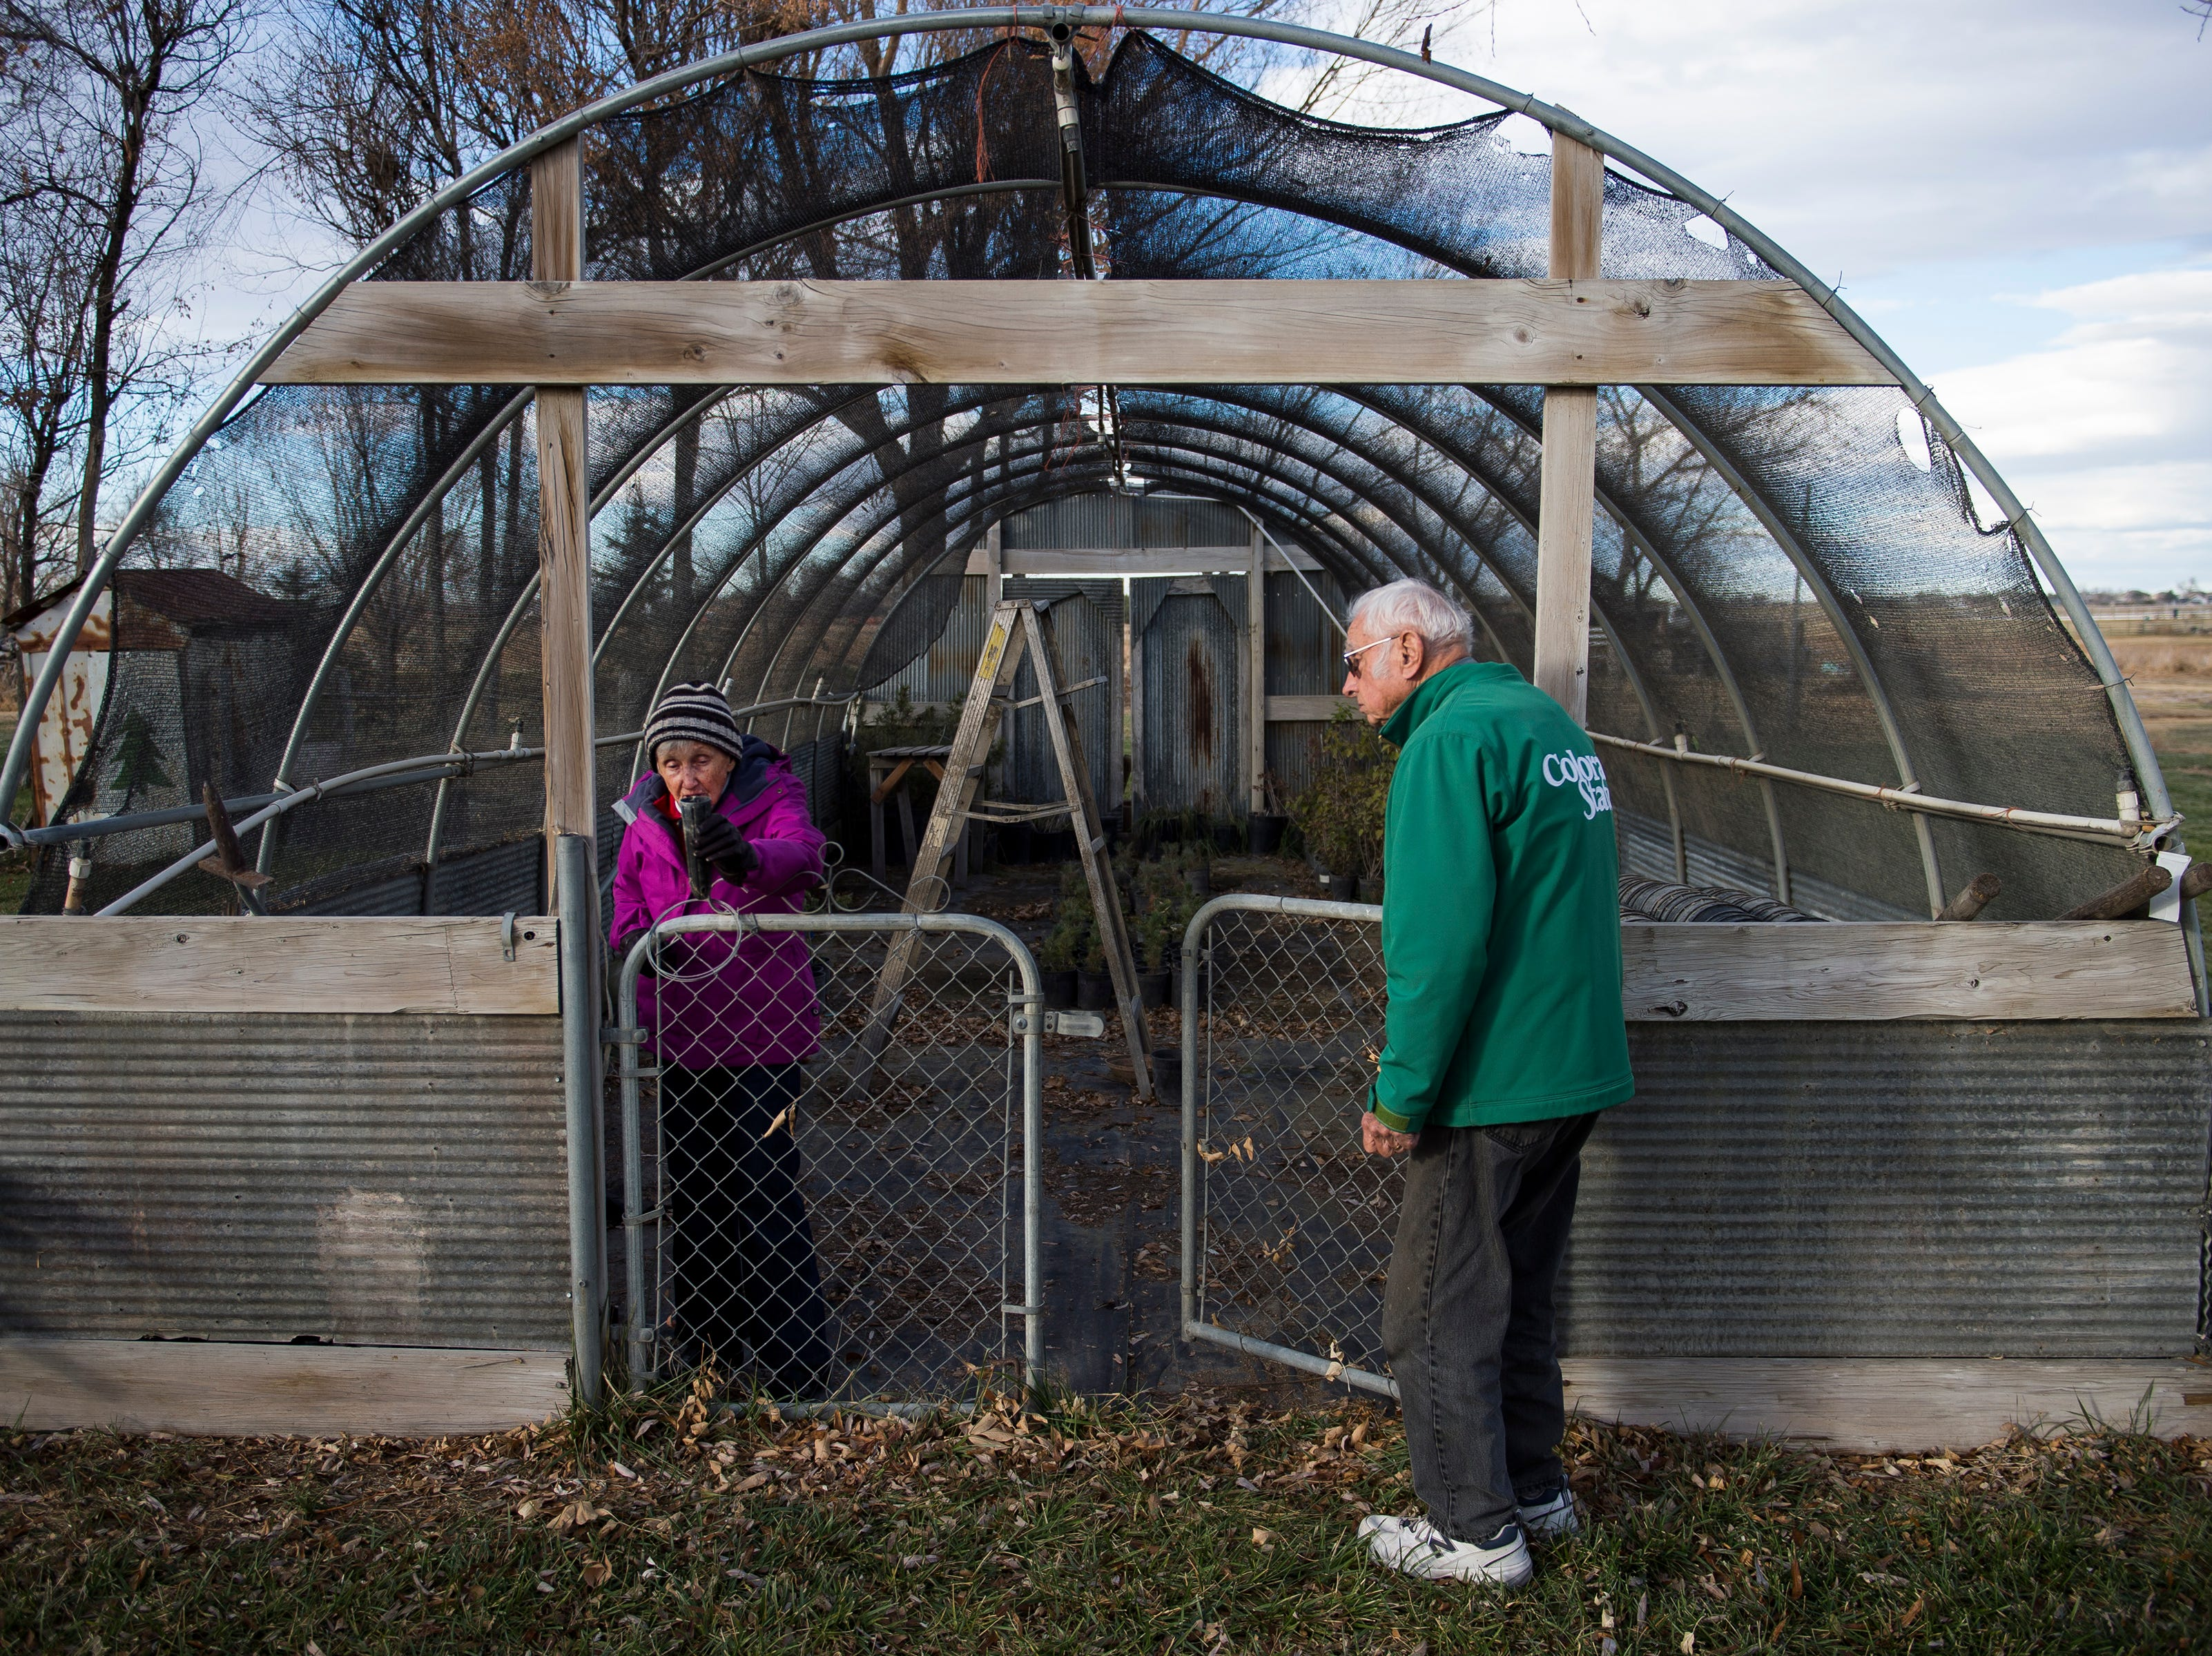 Janice Windsor shows the tubes that there saying trees come in before being planted in the shade house while husband John looks on, as seen on Friday, Nov. 16, 2018, at Windsors'  Christmas Trees in Windsor, Colo.